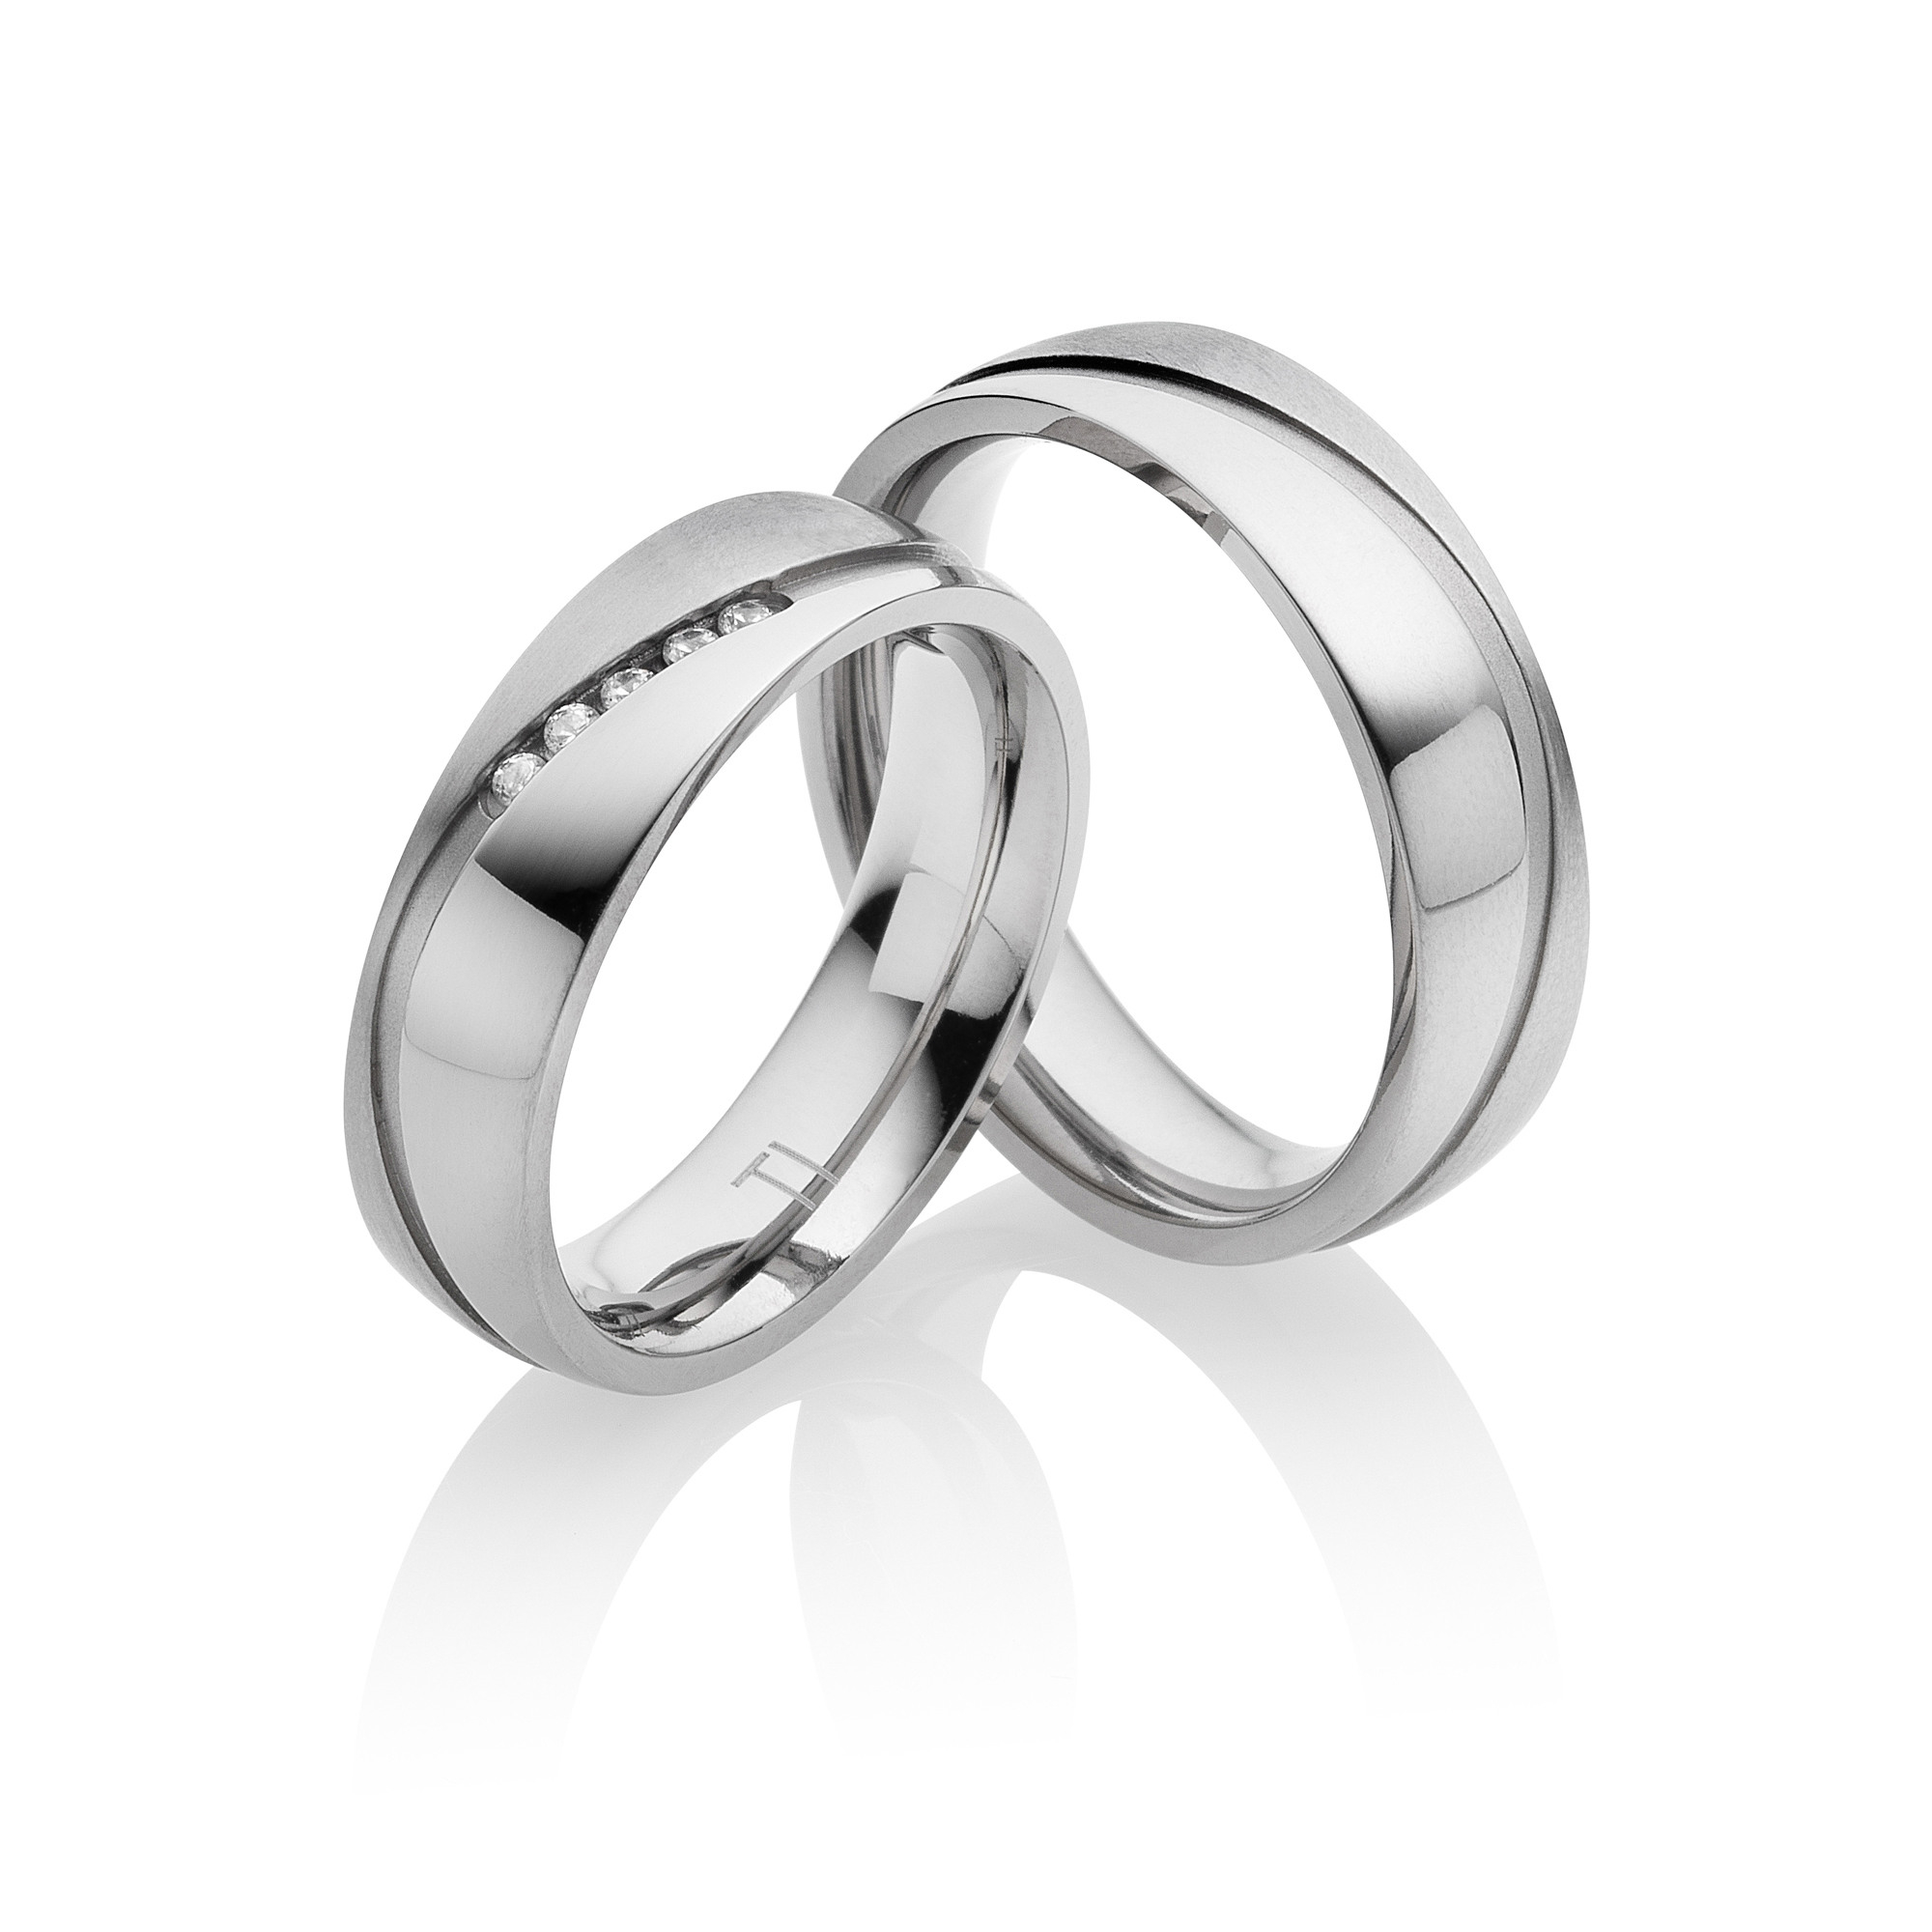 Titan Eheringe Partnerringe Sevilla | Miomi - Tungsten Carbide Jewelry